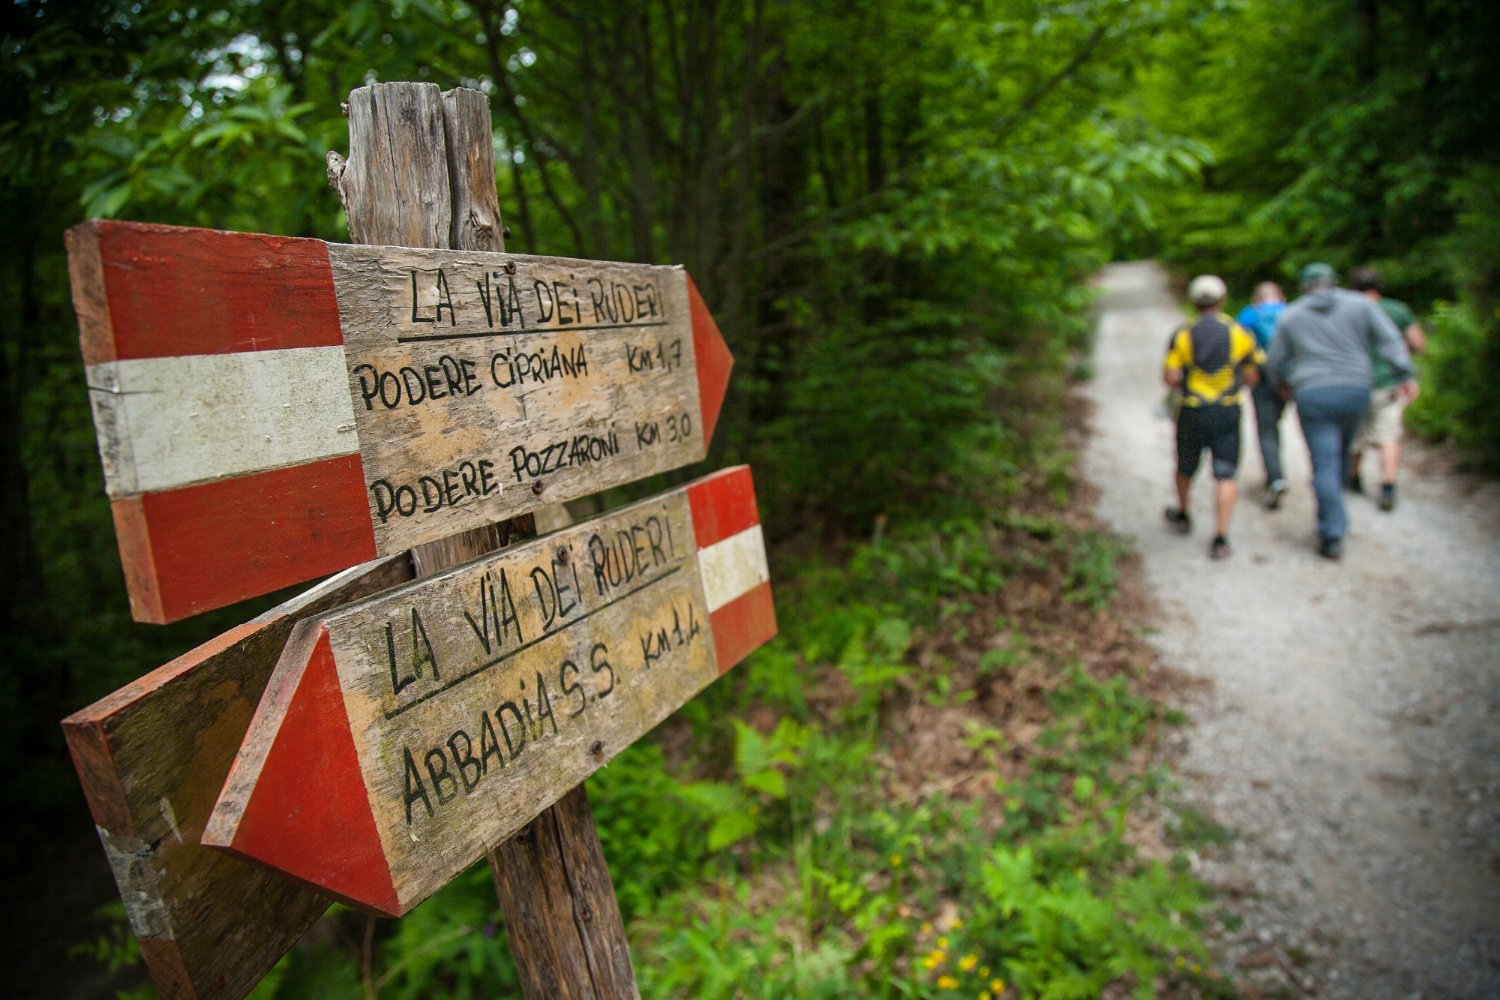 Trekking in the woods of Monte Amiata